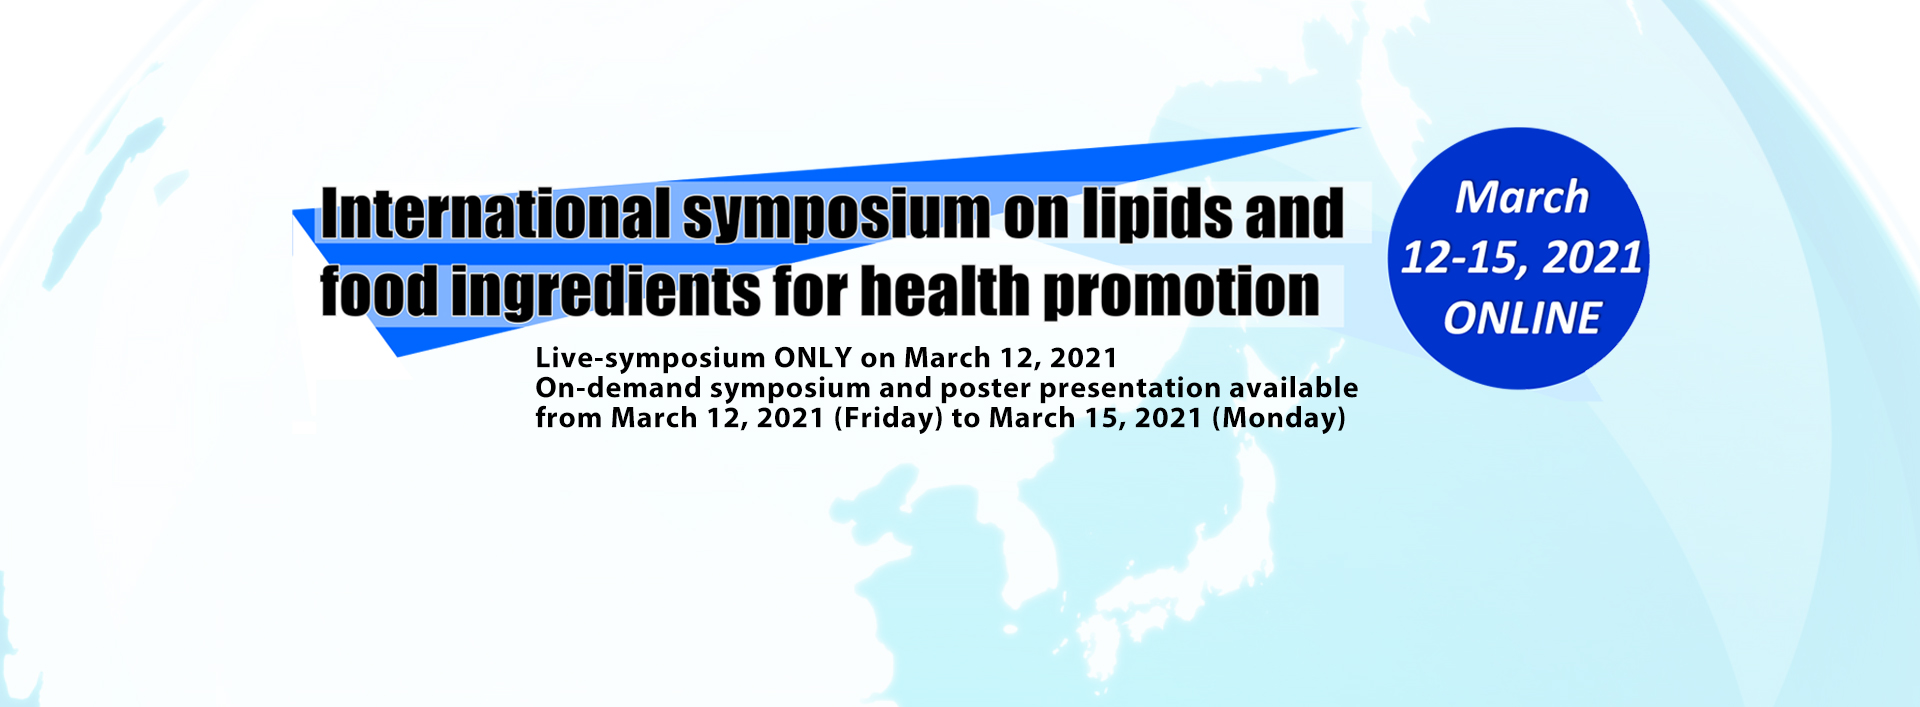 International symposium on lipids  and food ingredients for health promotion